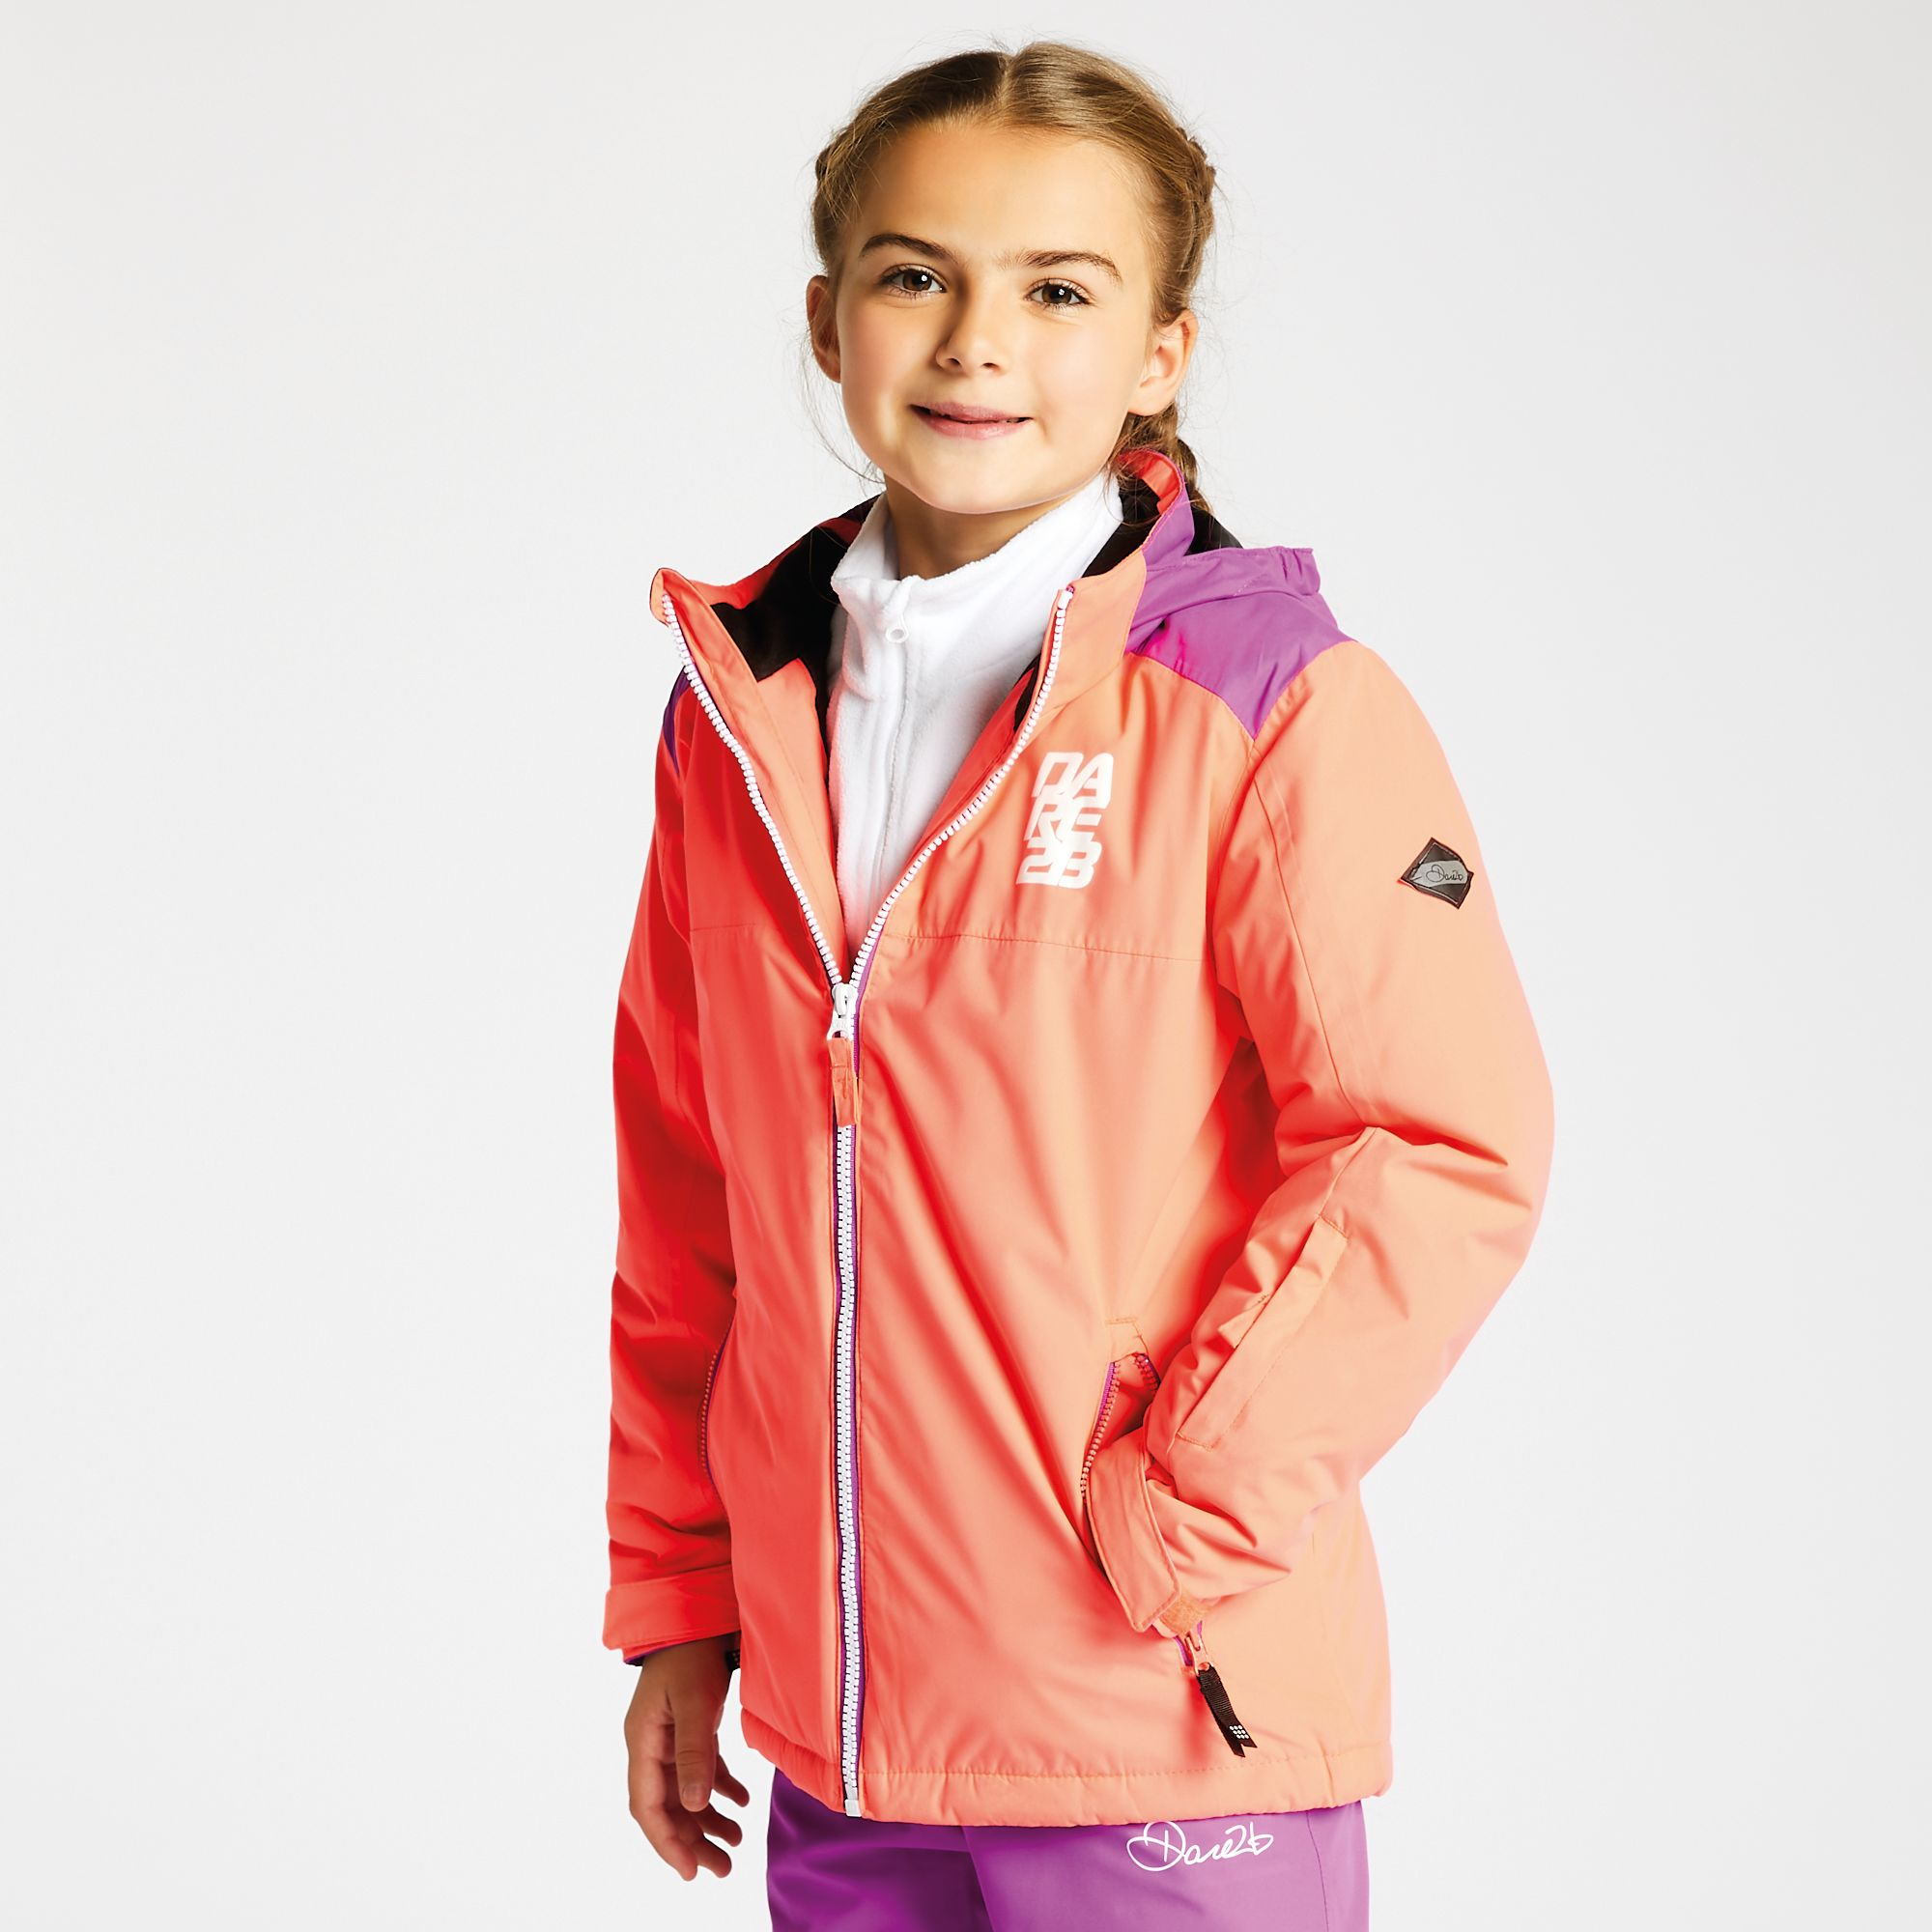 cc559c6232 Kids  6 Piece Ski Pack. Add to Saved Items. Jacket available in